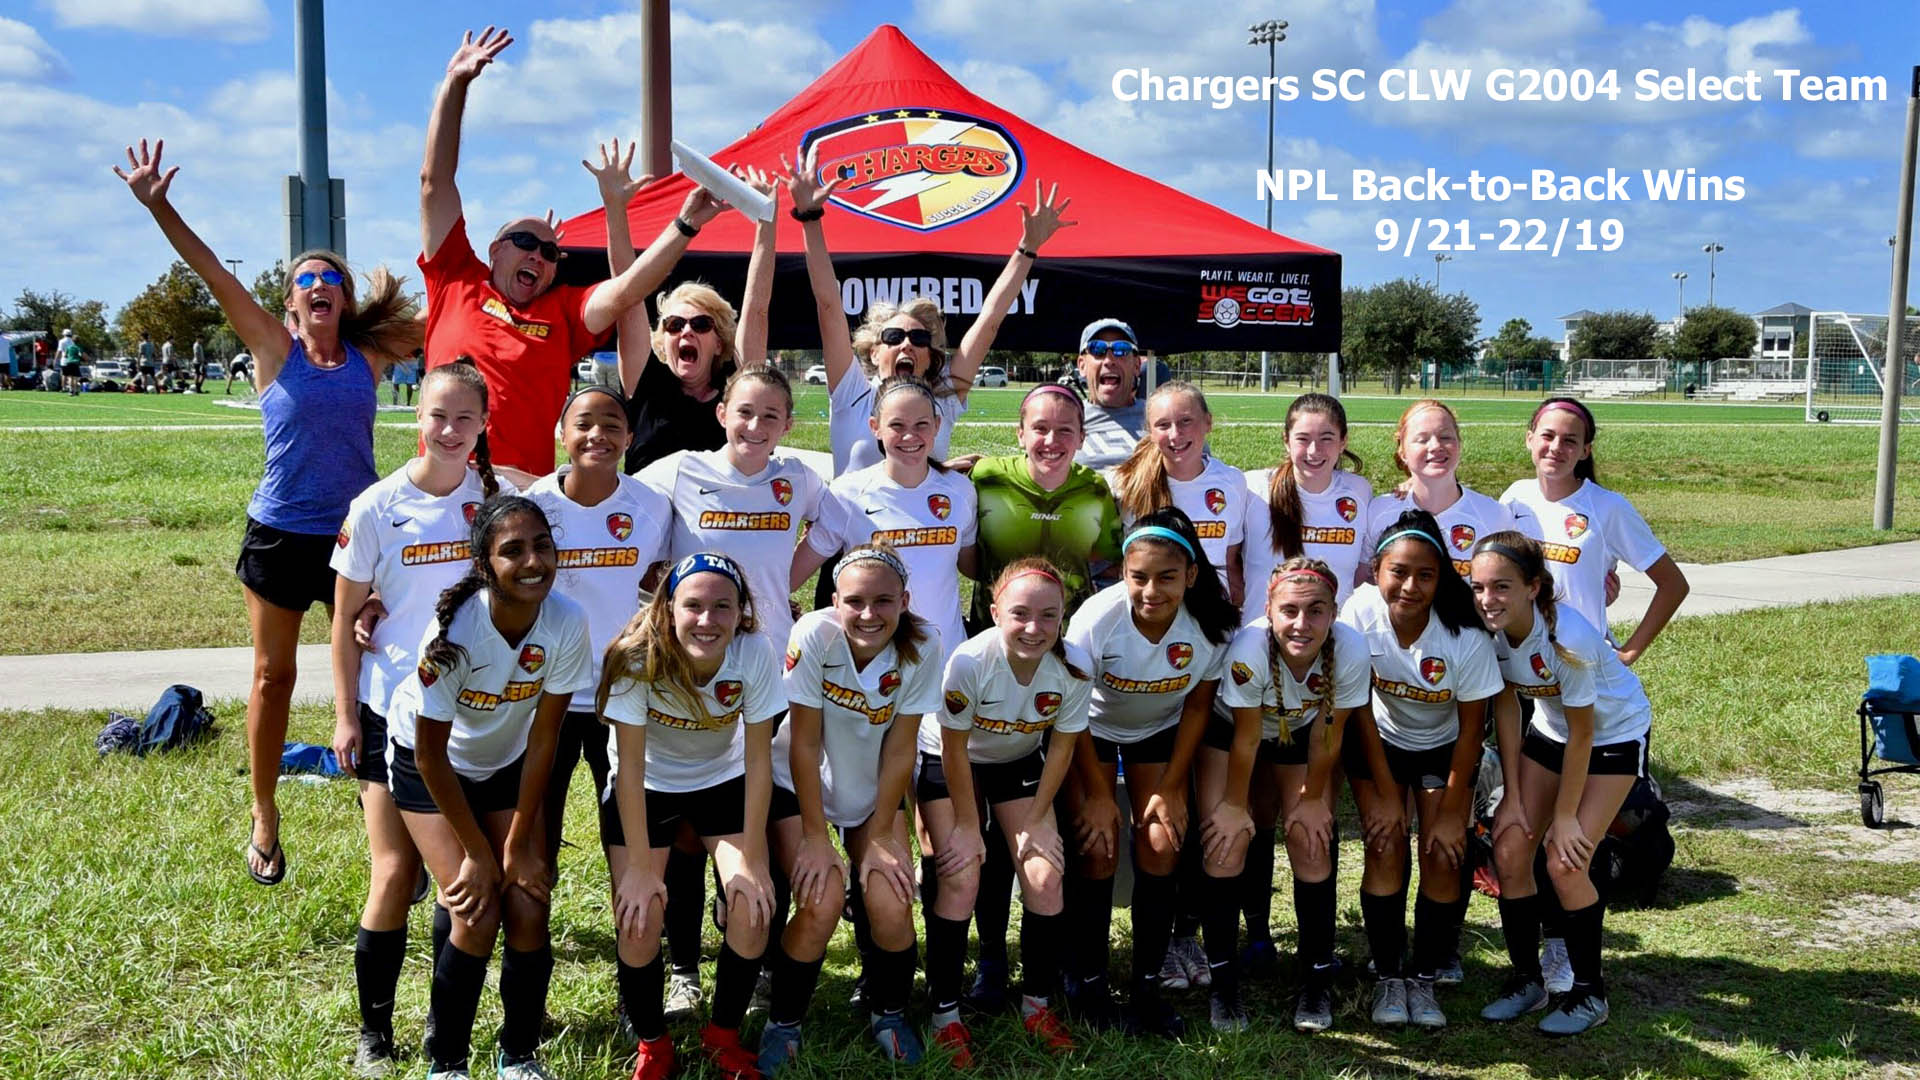 CLW G2004 - Great NPL Weekend!